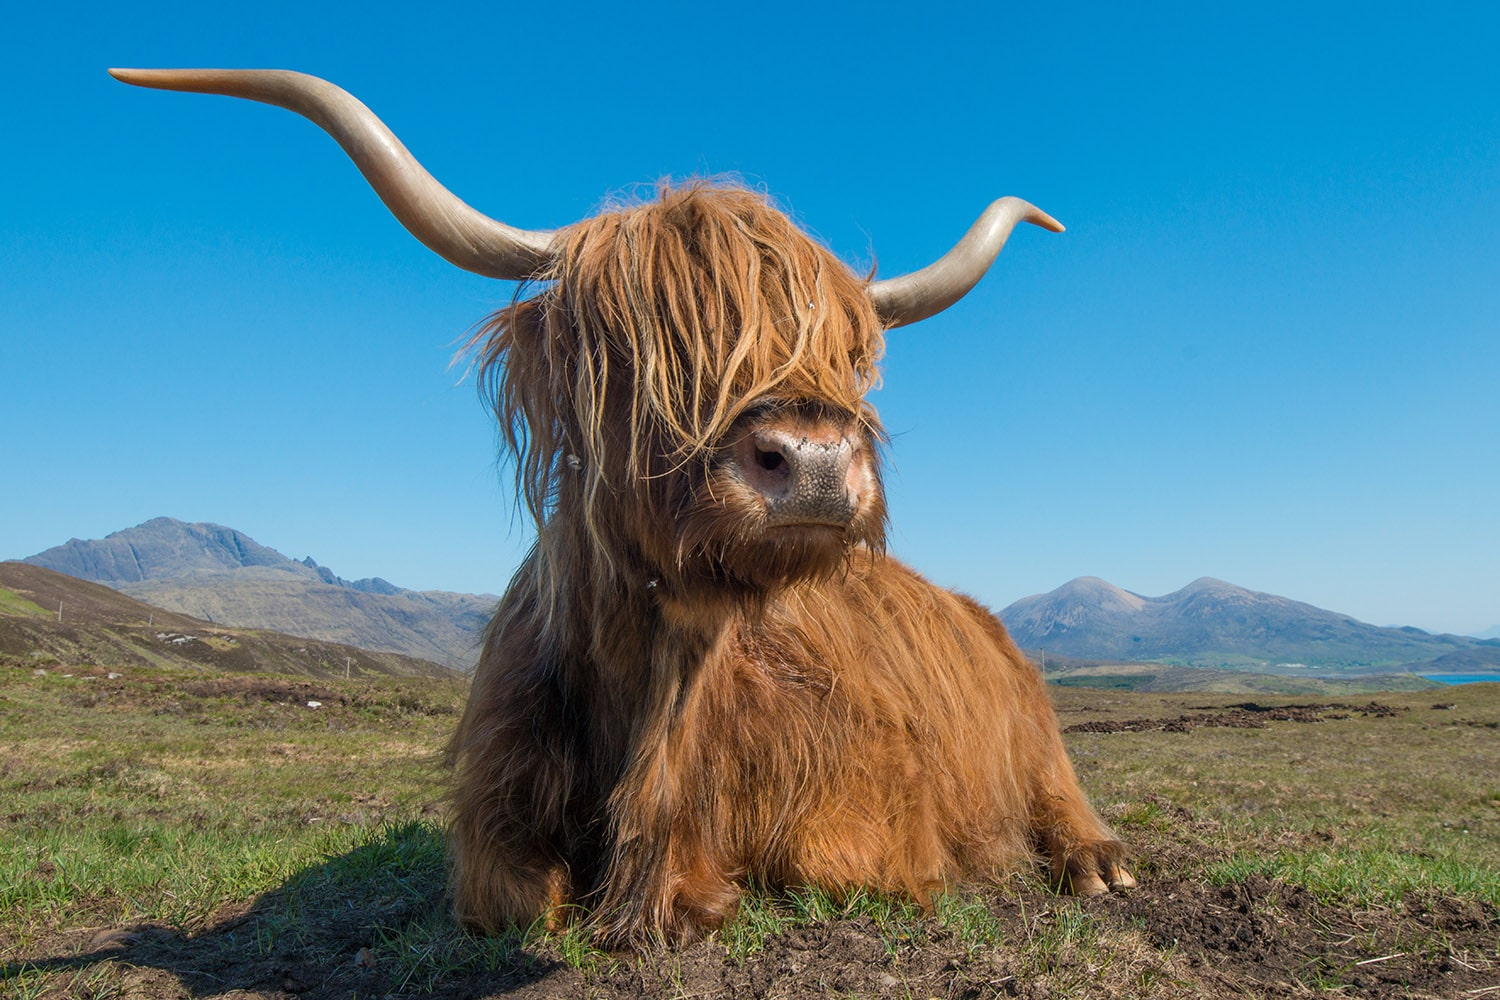 An image of a Highland cow, captured on the Isle of Skye during our Skye High tour